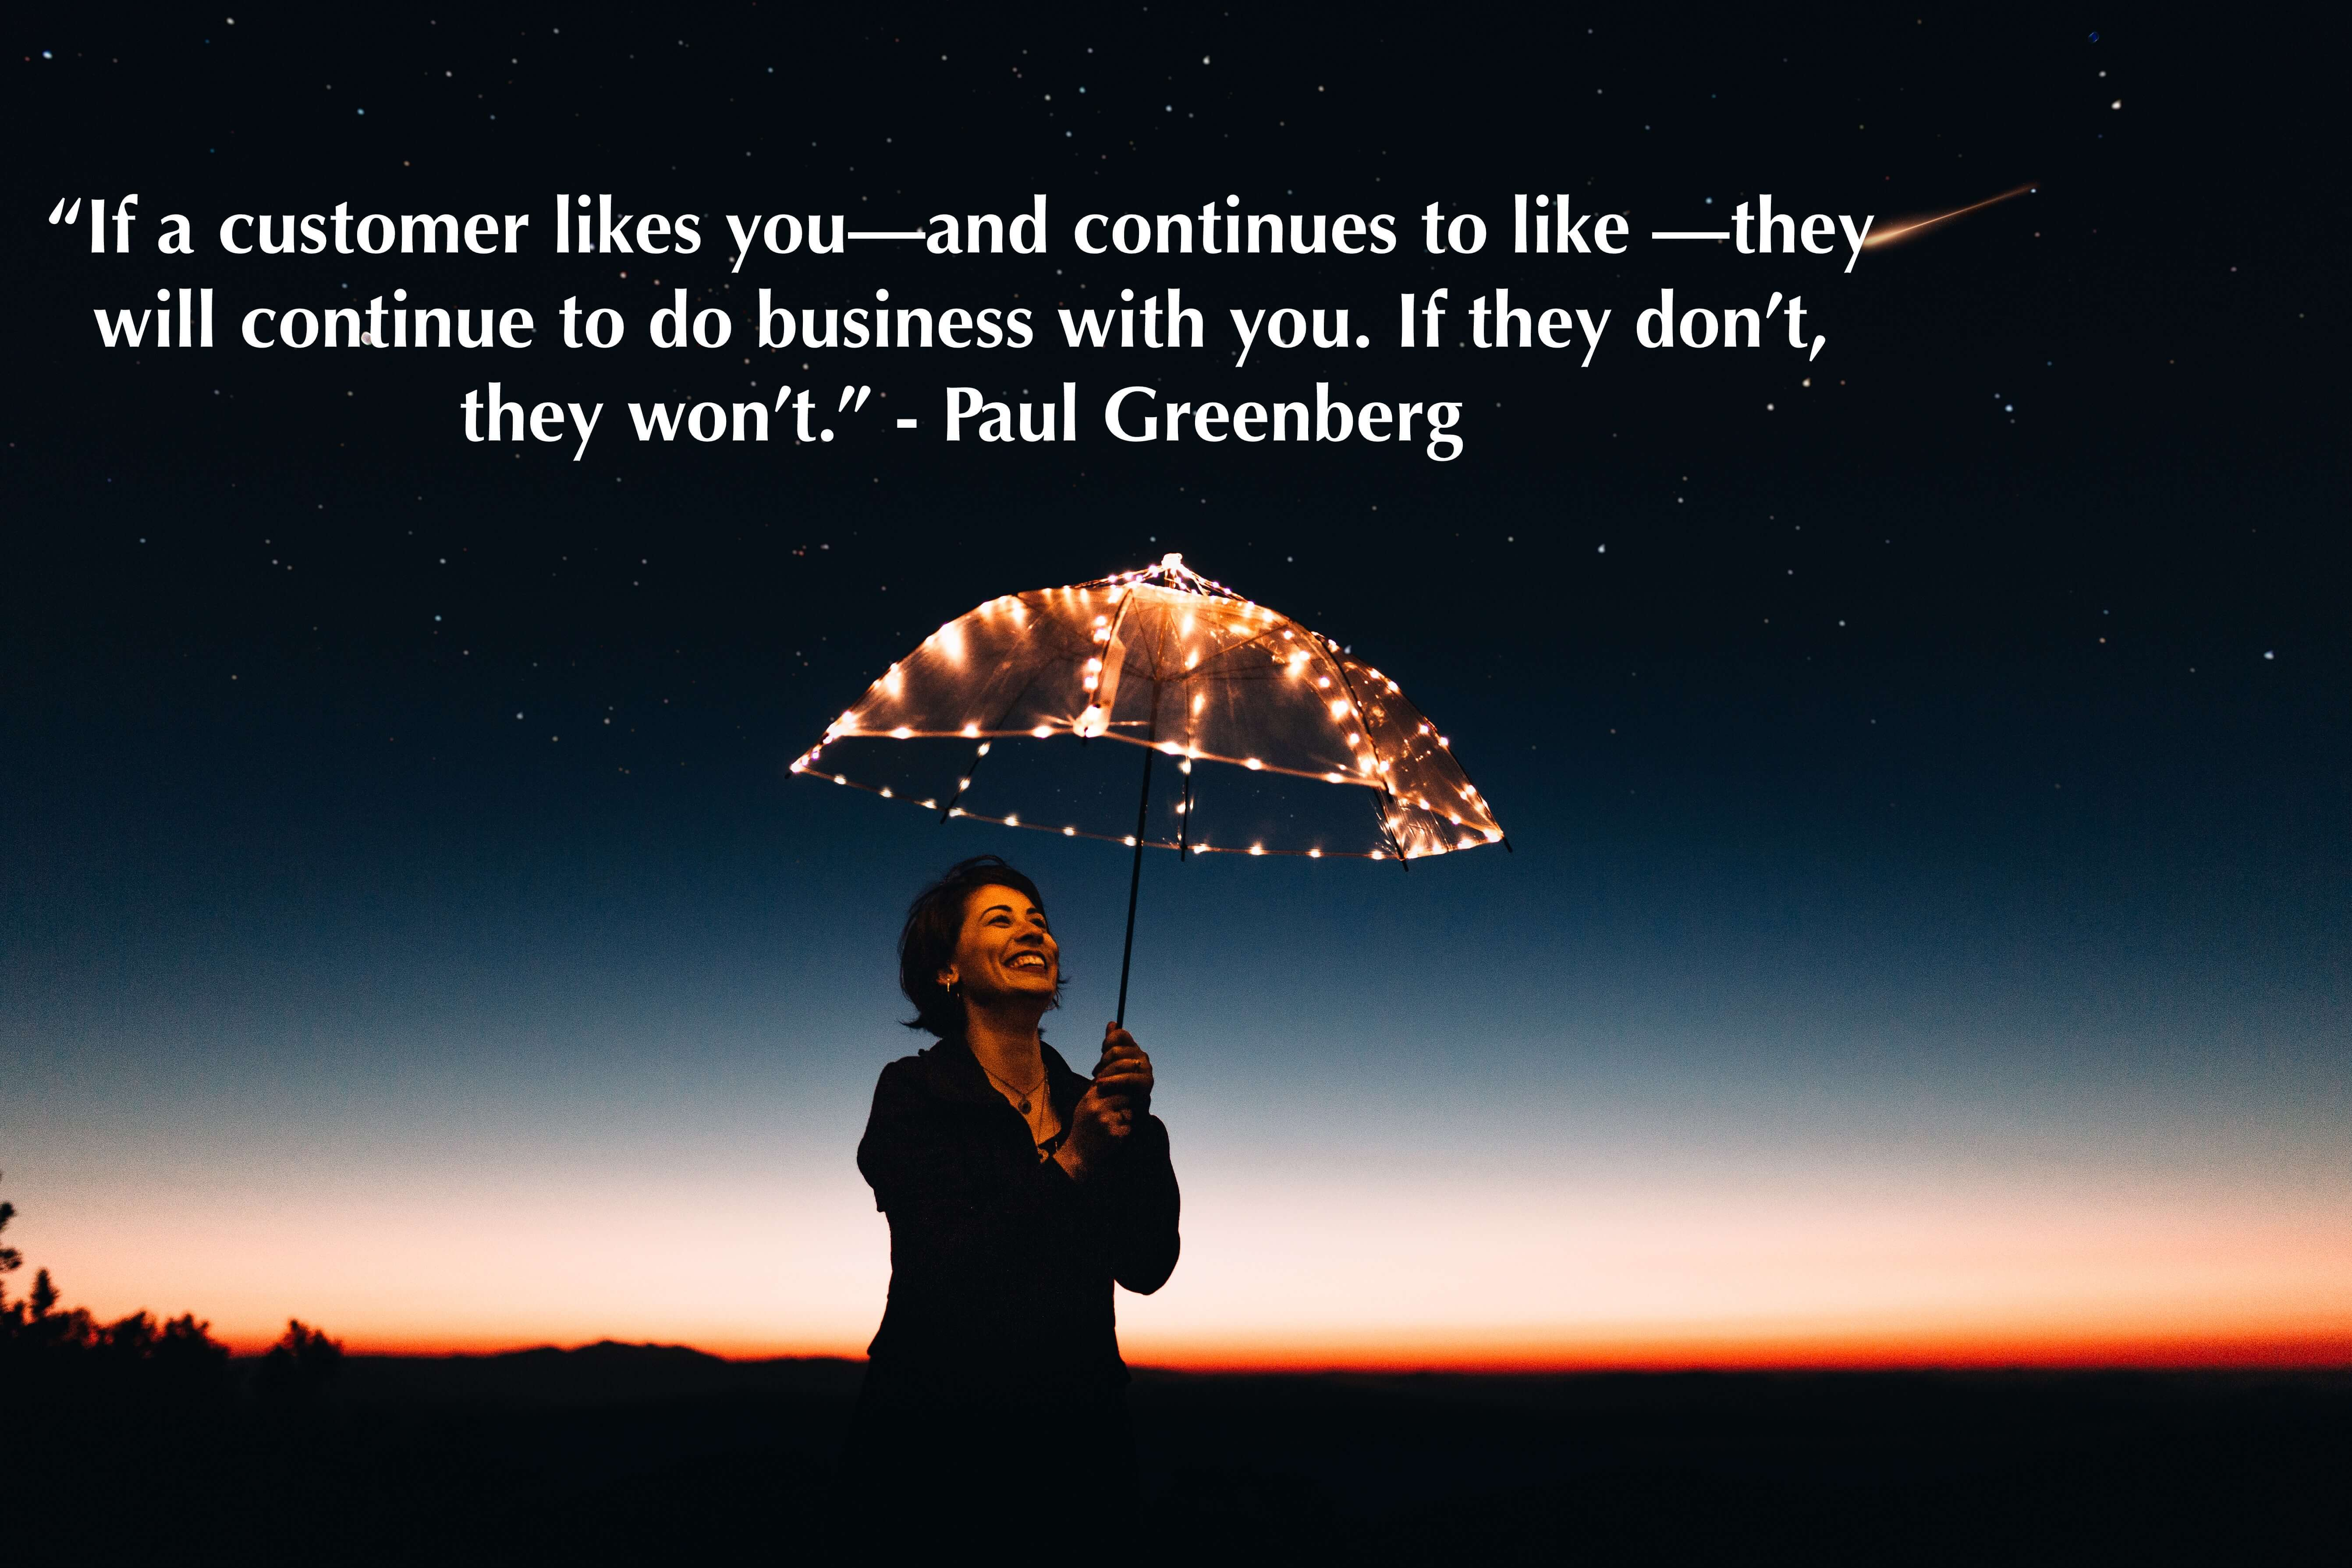 """If a customer likes you—and continues to like —they will continue to do business with you. If they don't, they won't."" - Paul Greenberg"